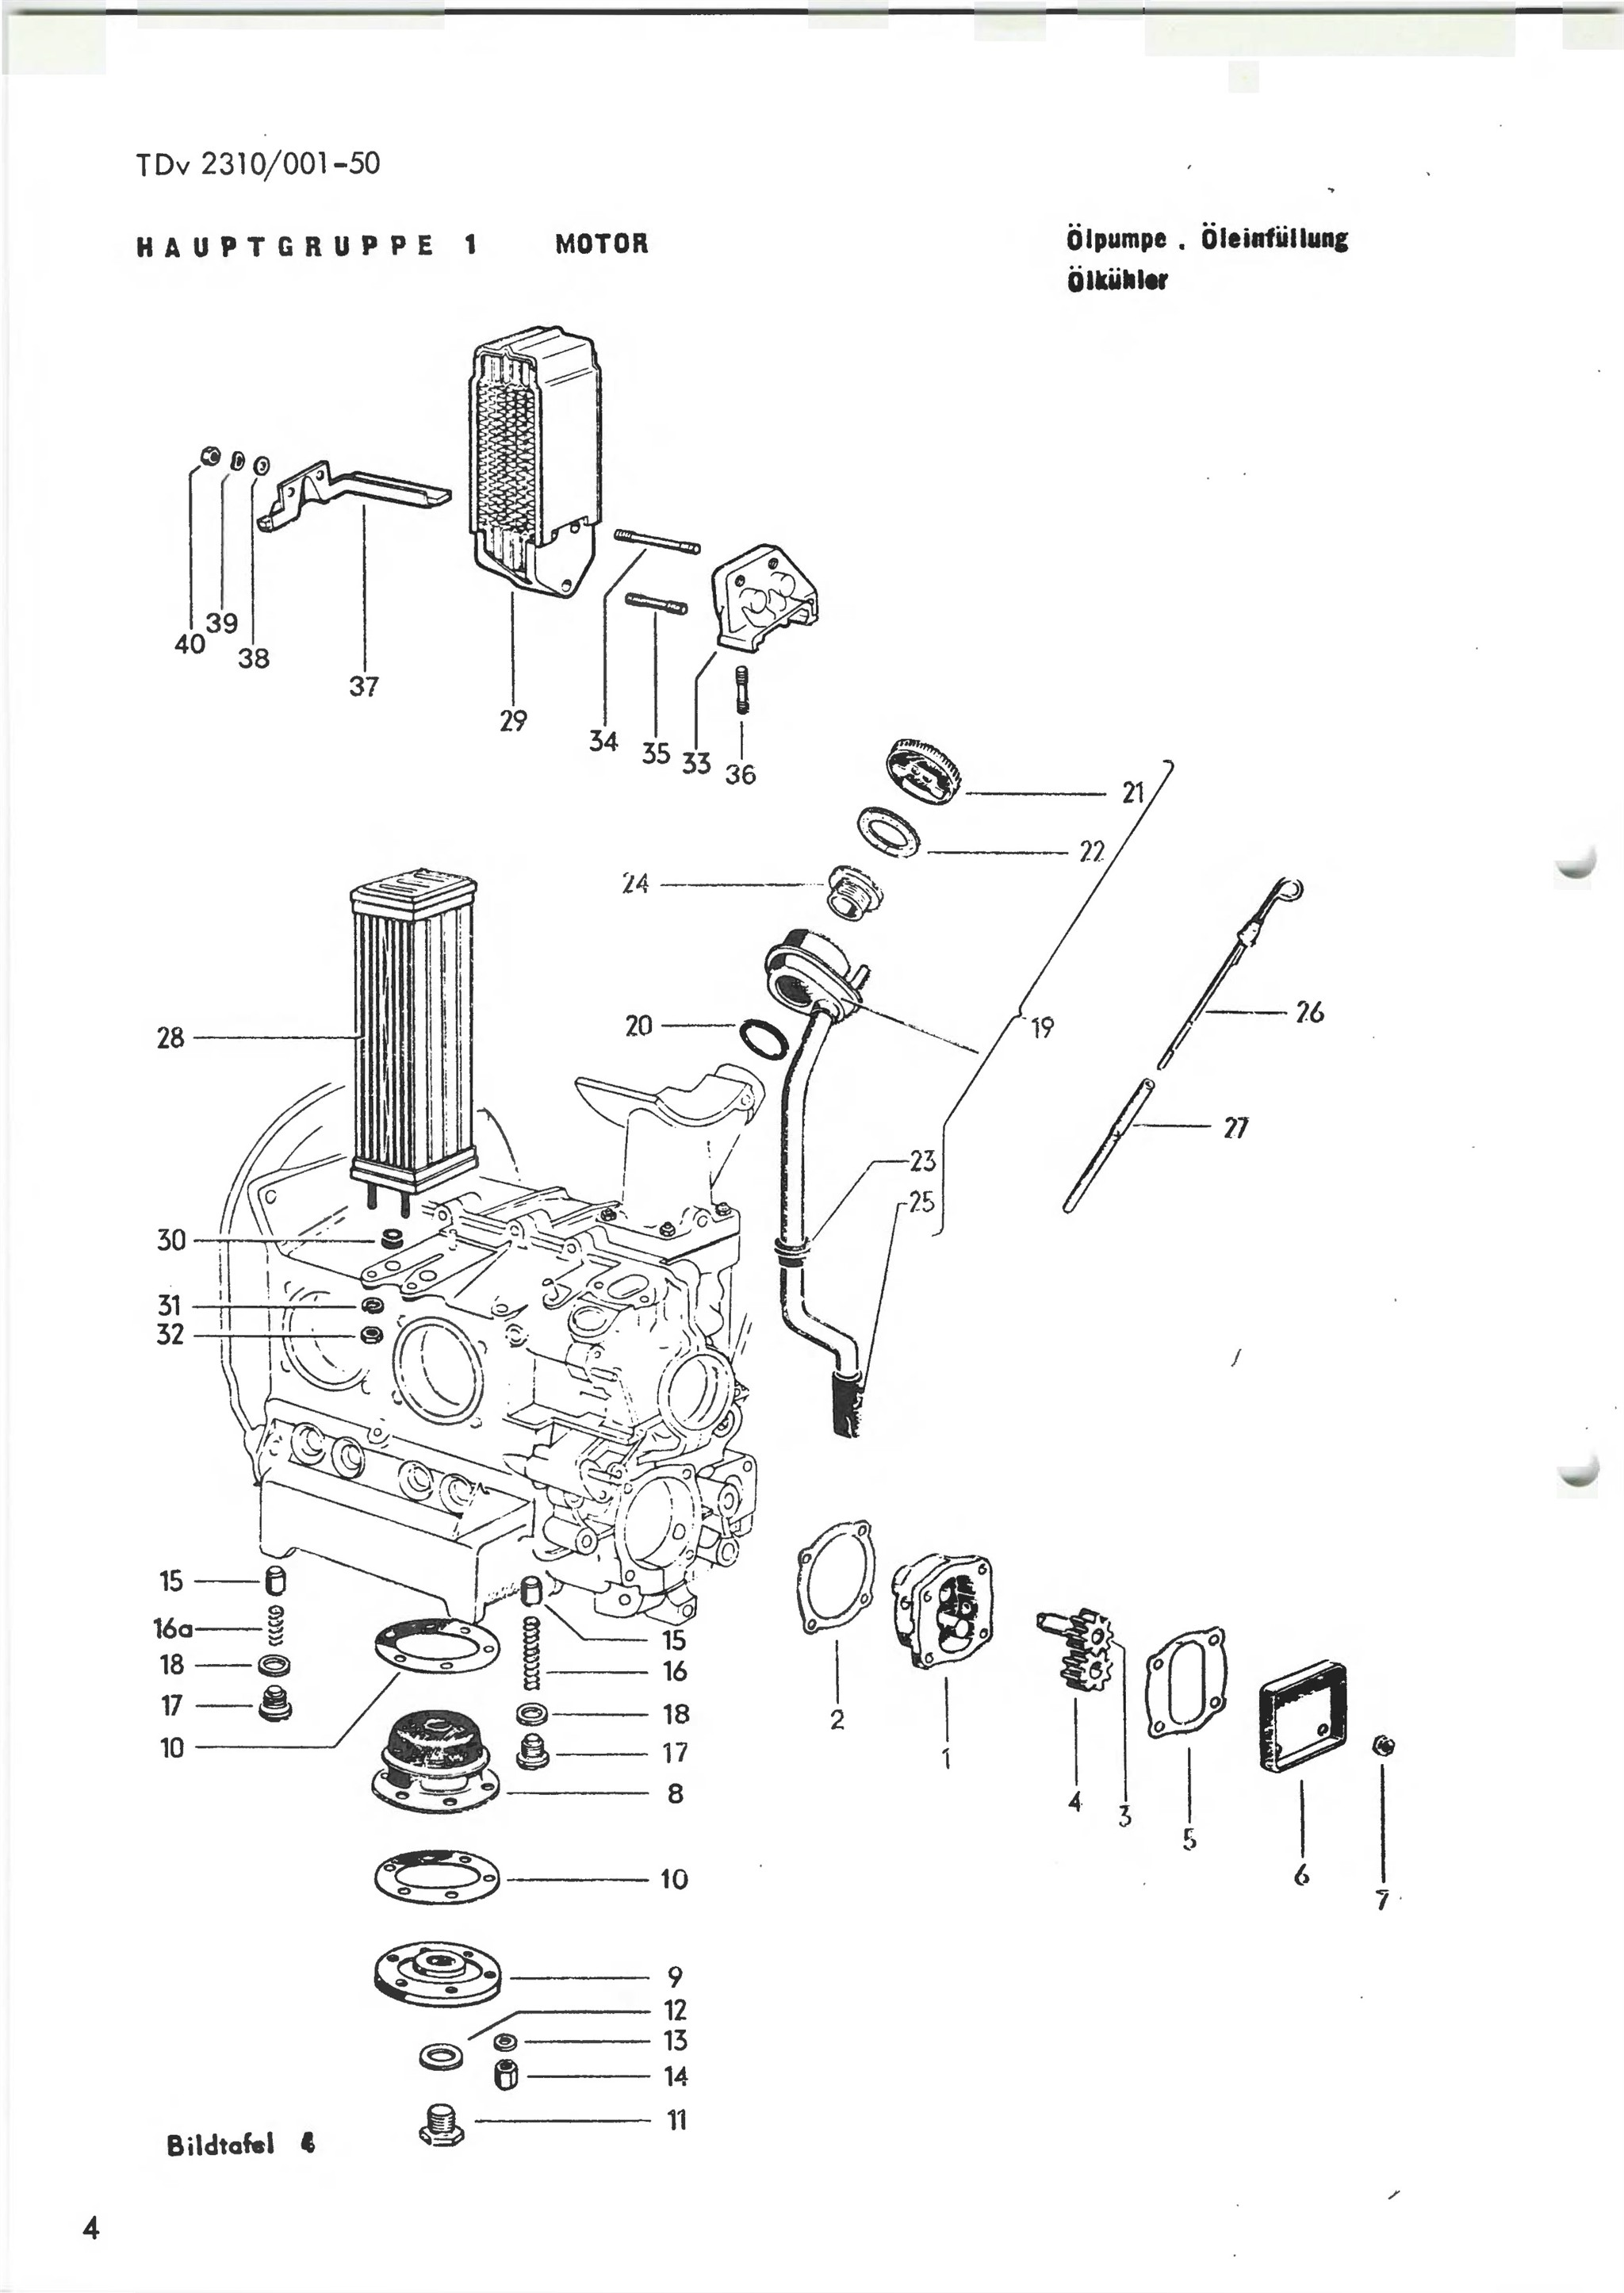 Mtd Yard Machine Manual Ebook